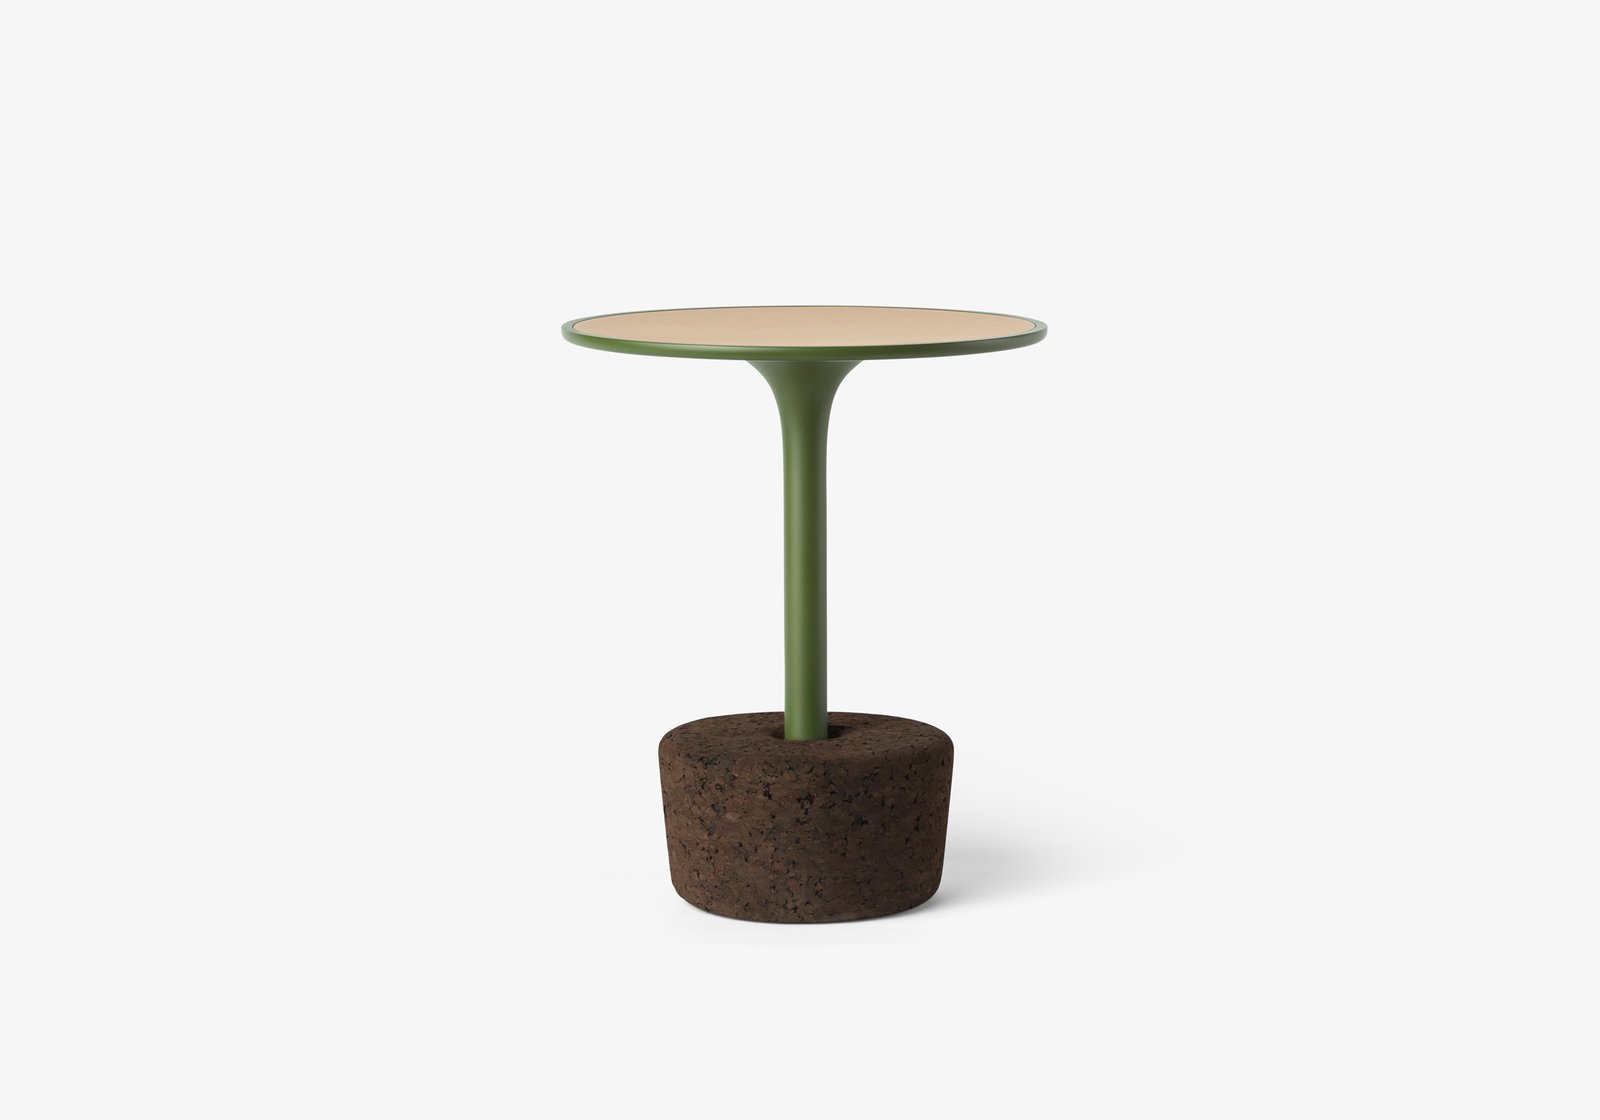 "Flora Small Tall  FLORA is a set of coffee tables that refers to the plants we offer to the ones we love, so there is a similarity between taking care of plants and taking care of the objects. These versatile tables combine natural materials, with four sizes and six different colored frame finishes and may be used separately or together.  Size  Ø40 x H48 cm / Ø15,7'' x H18,9''.  Weight  4,4 kg / 9,7 lbs.  Search ""기흥출장안마【Ø1Ø↔3Ø67↔661Ø】⊀후불제⊁기흥출장마사지 기흥콜걸출장안마후기【20대맞춤】기흥콜걸출장마사지 기흥출장샵강추 기흥모텔출장美人기흥출장맛사지후기∠기흥출장안마추천후기 기흥출장여대생"" from Floras"